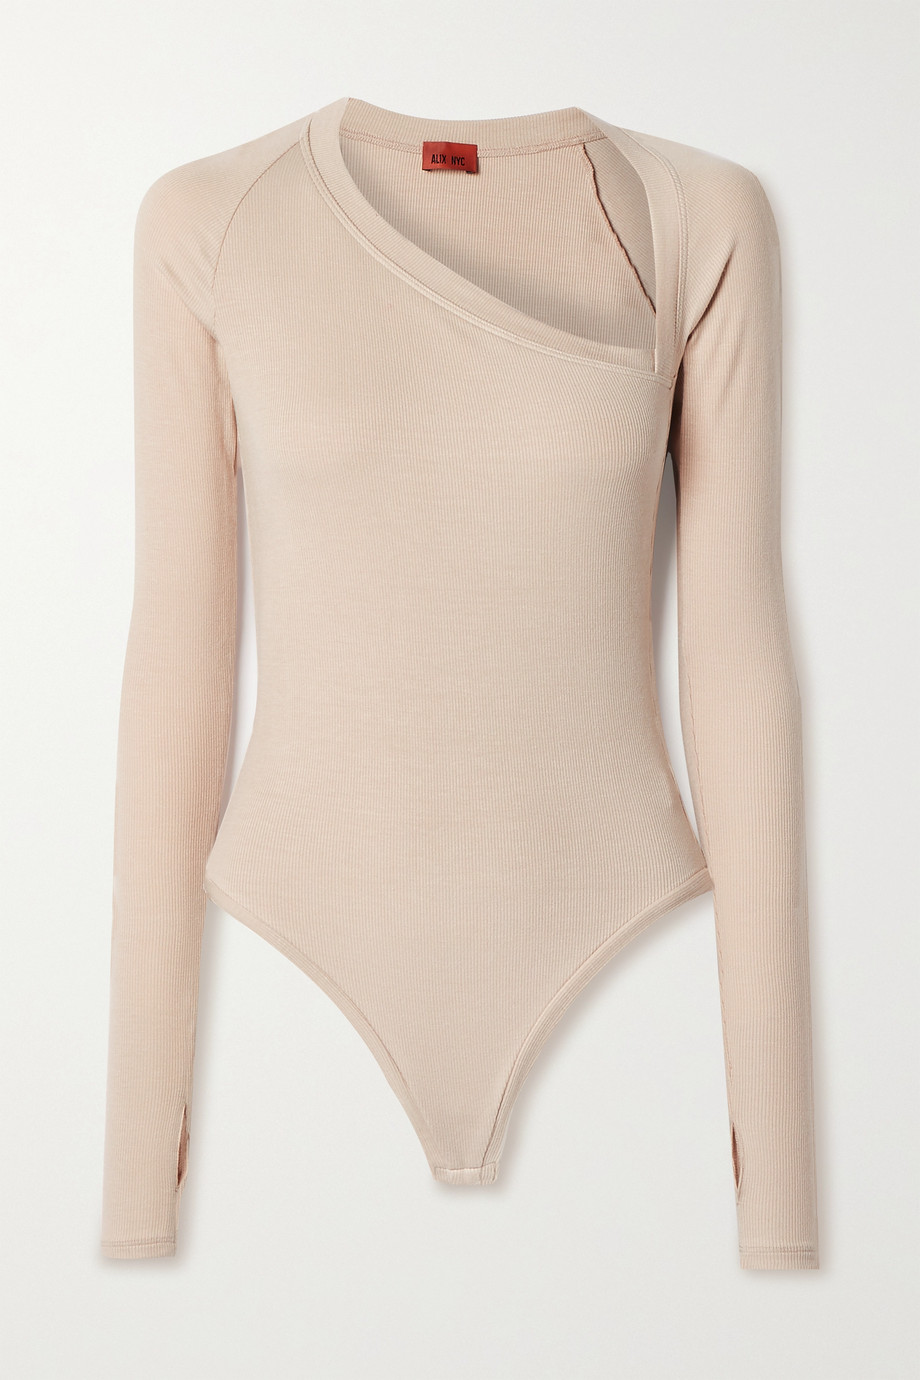 Alix NYC Stratton ribbed stretch-modal jersey thong bodysuit